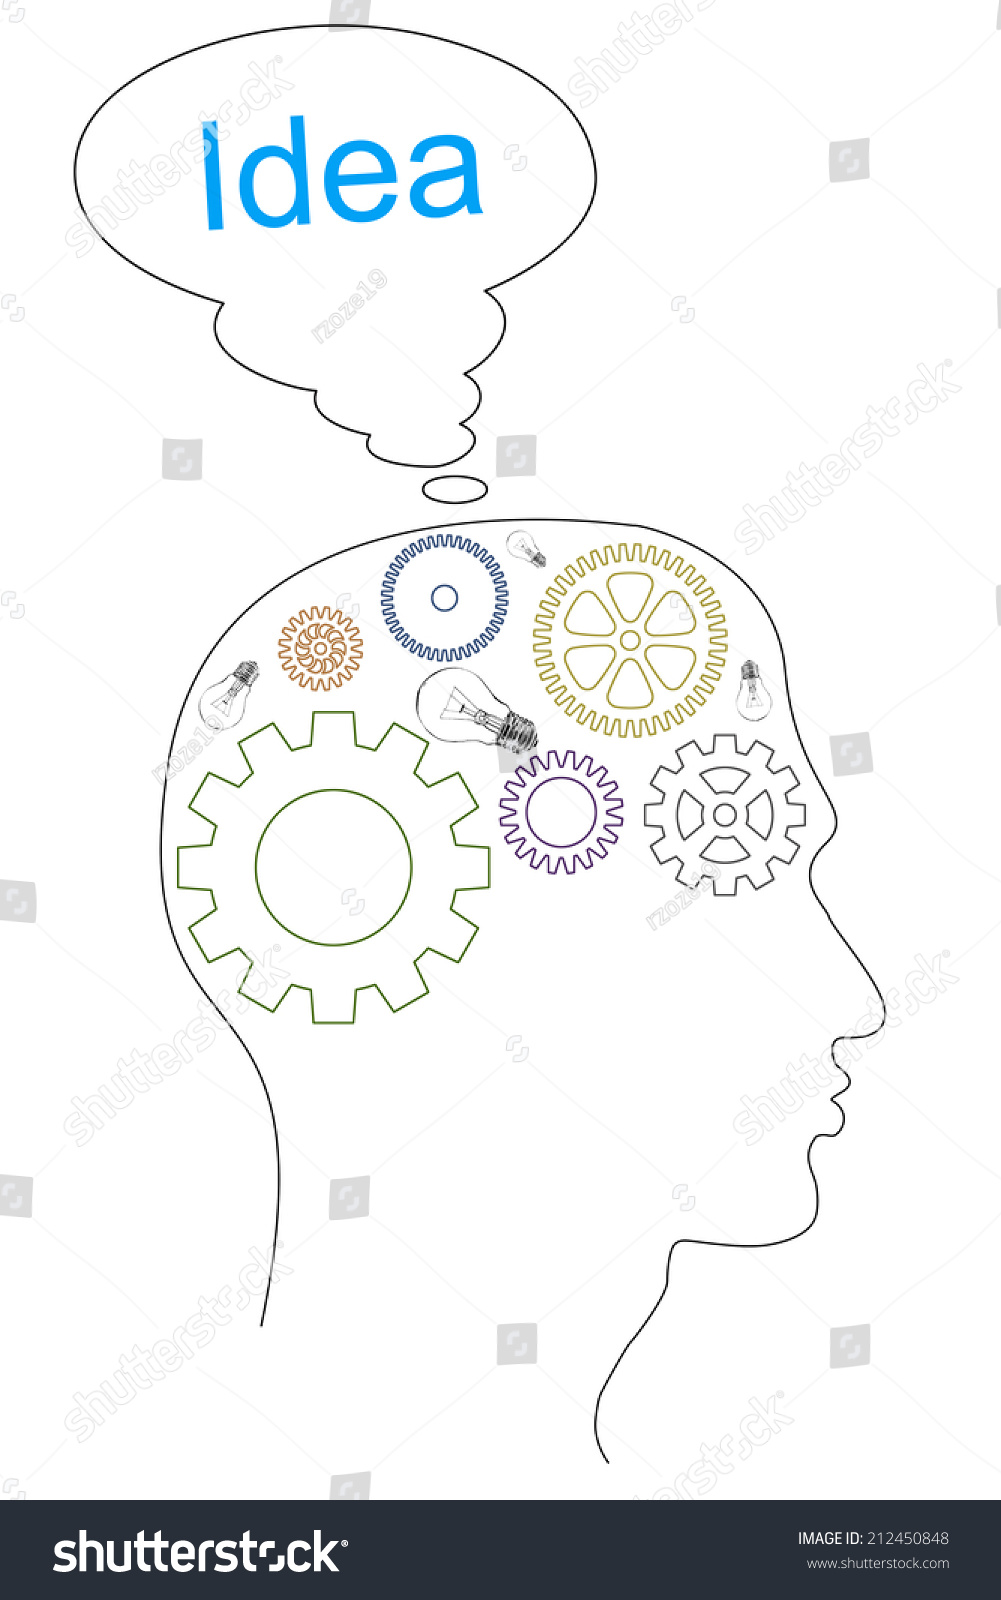 stock photo brain gears in human head shape on white background 212450848 brain gears human head shape on stock illustration royalty free